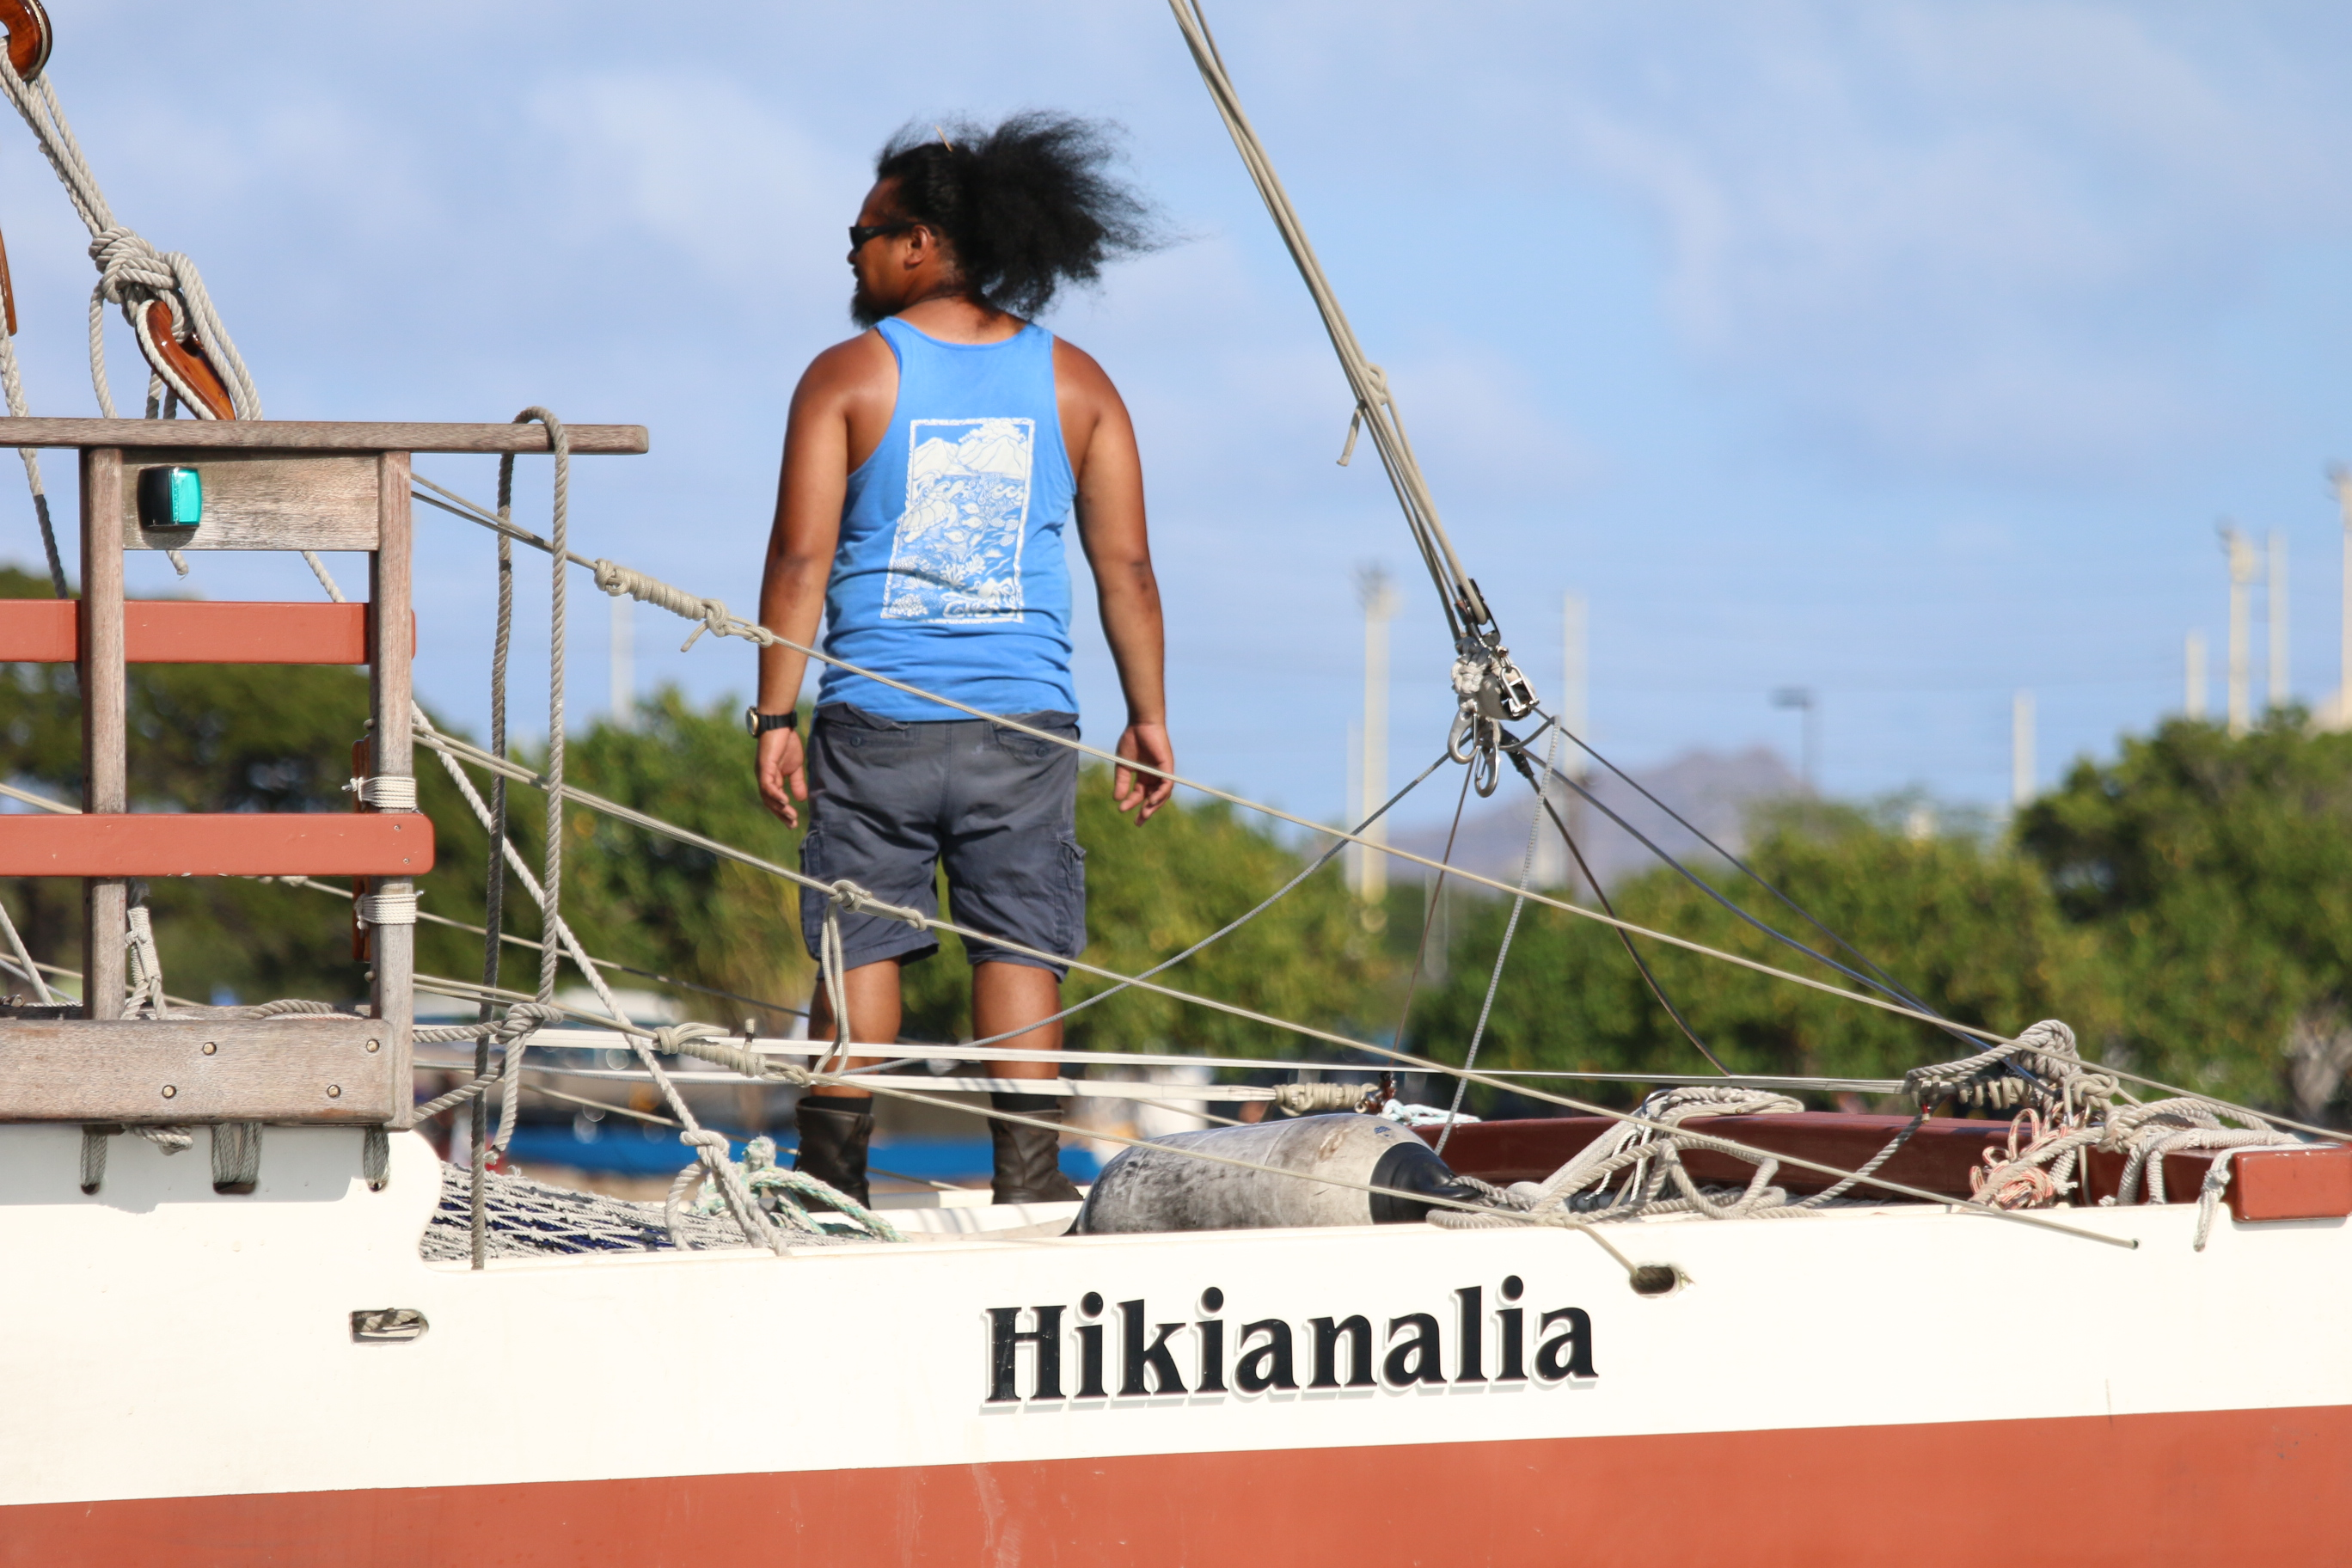 Hikianalia Departure Delayed Another Day